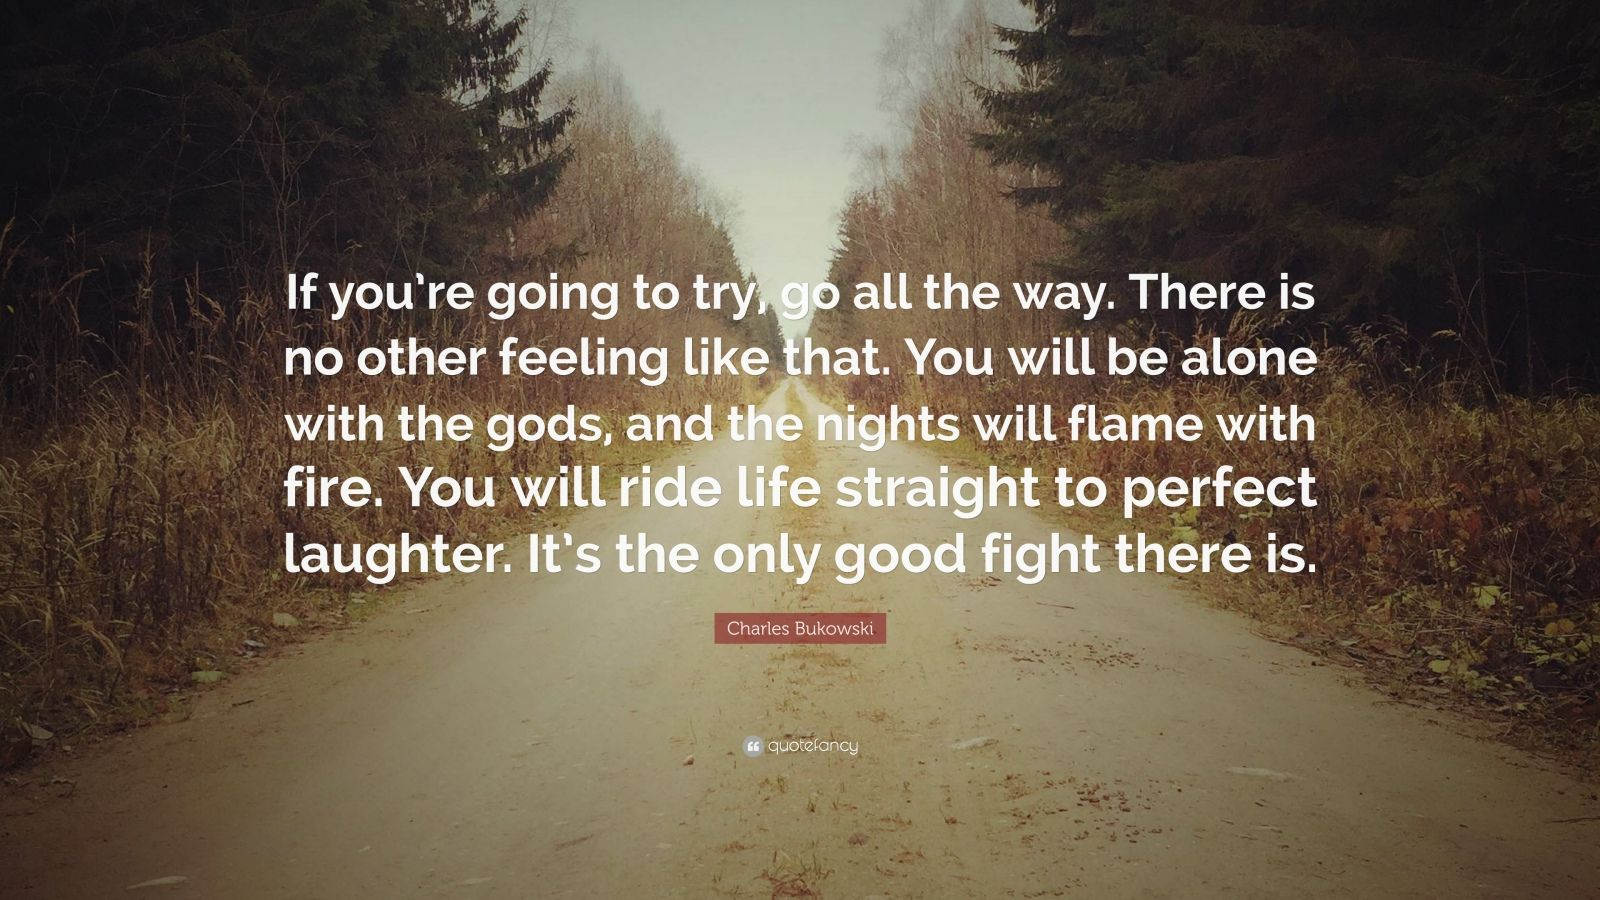 Charles Bukowski Quote If You Re Going To Try Go All The Way There Is No Other Feeling Like